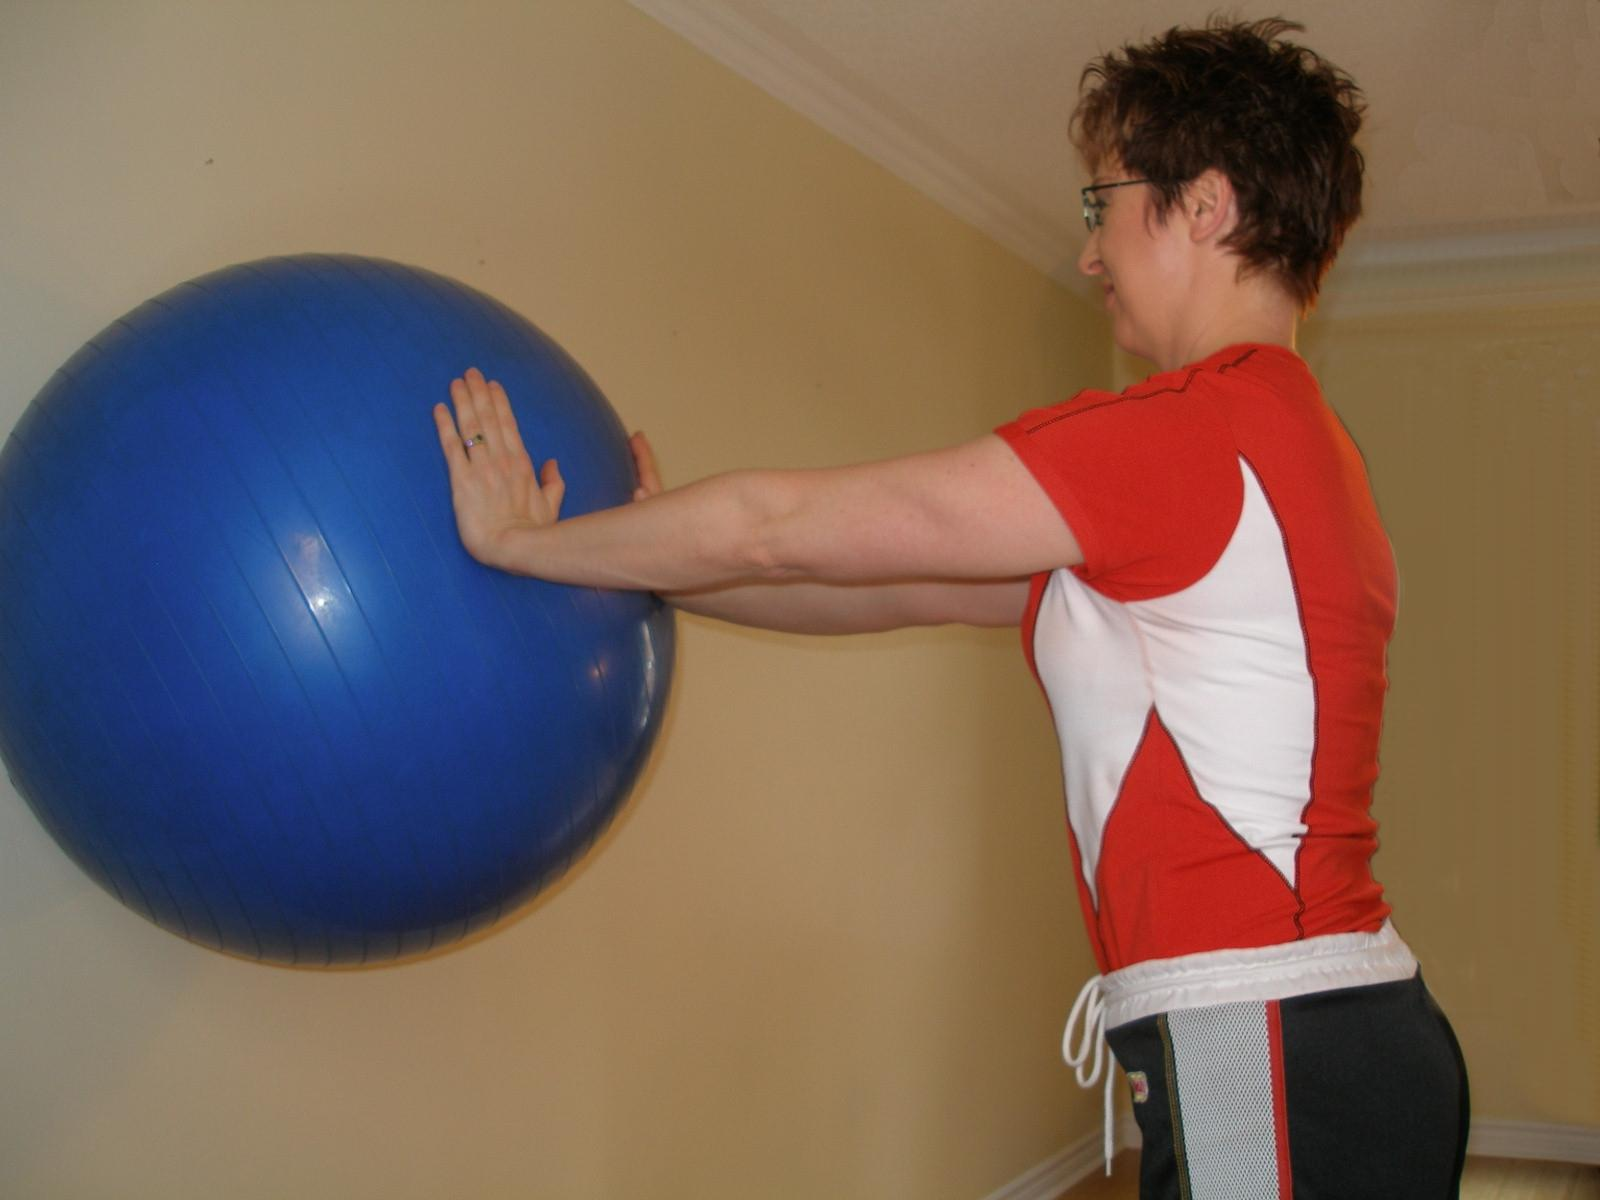 leaning straight on the exercise ball